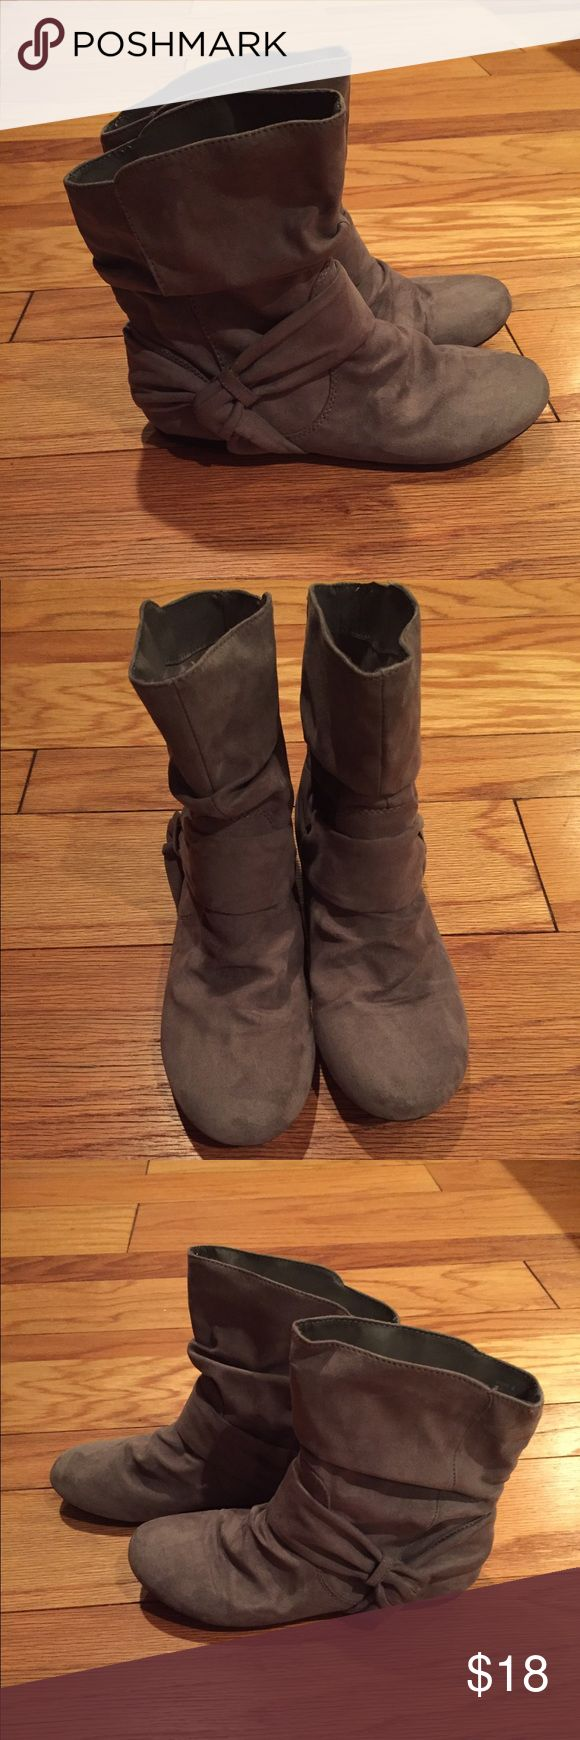 Report Evalynn Gray Suede boots size 8 Report Evalynn Gray Suede boots size 8- worn only once! Report Shoes Ankle Boots & Booties